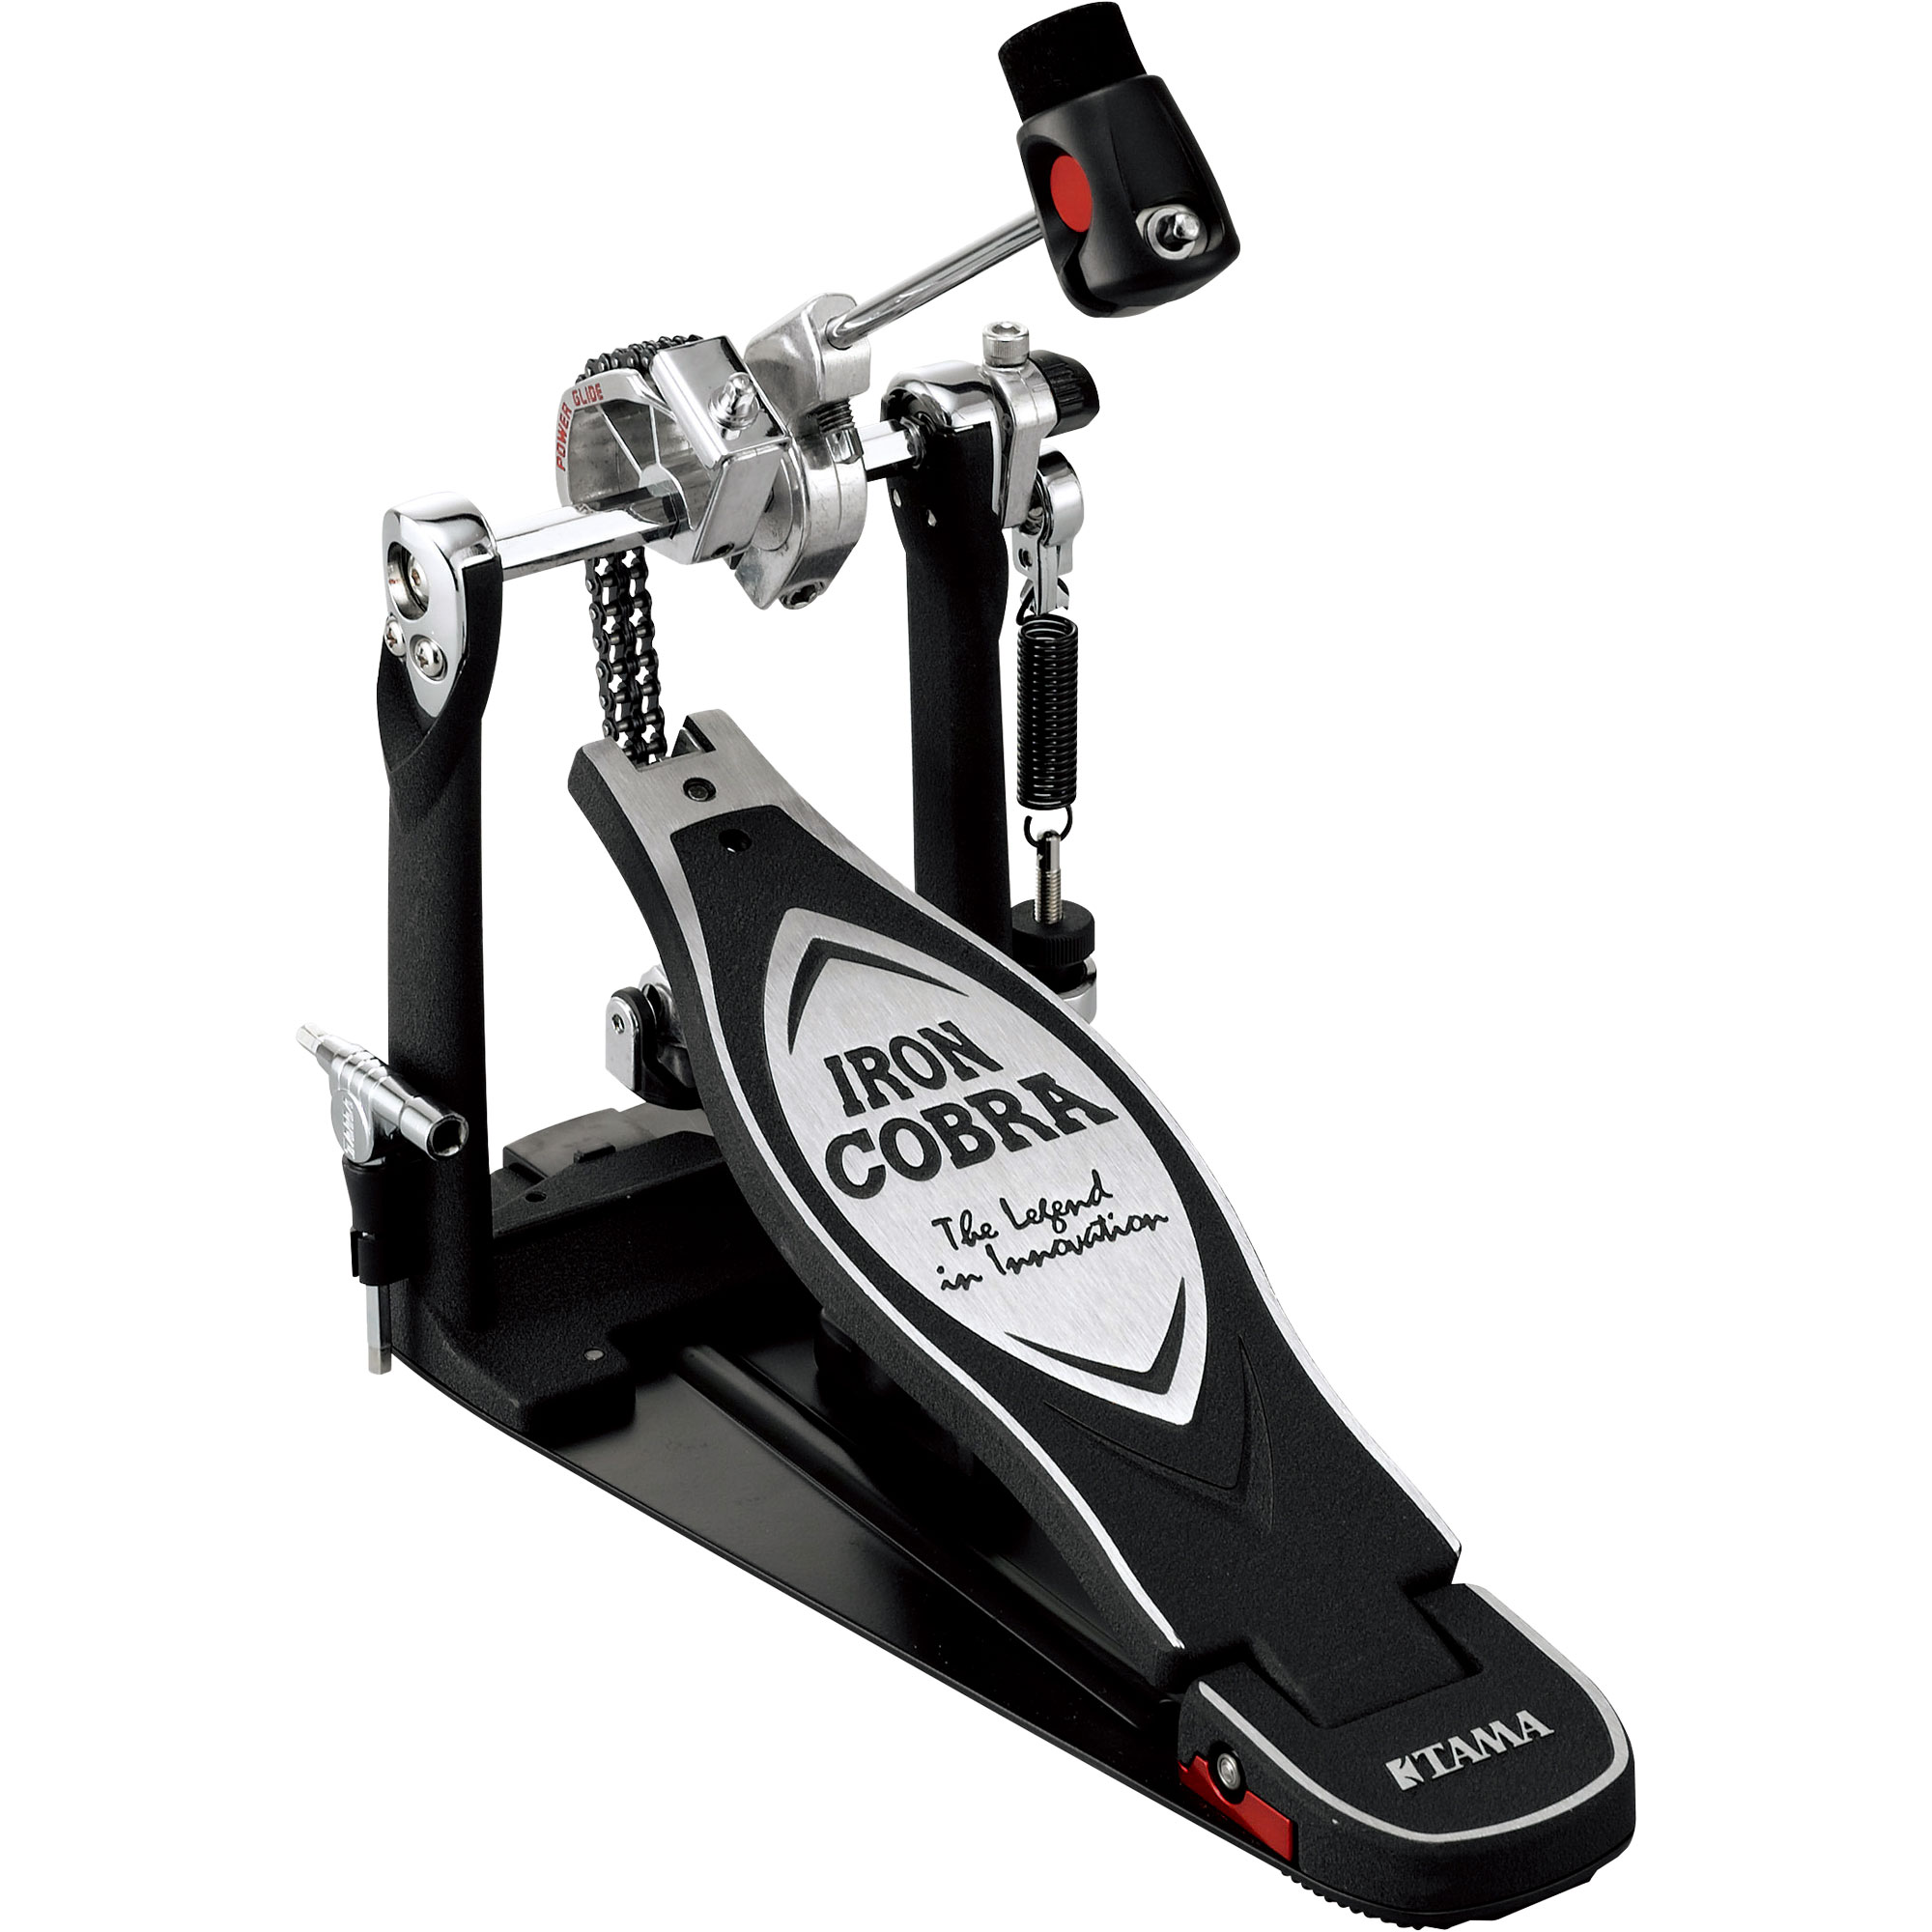 Tama Iron Cobra 900 Power Glide Single Bass Pedal